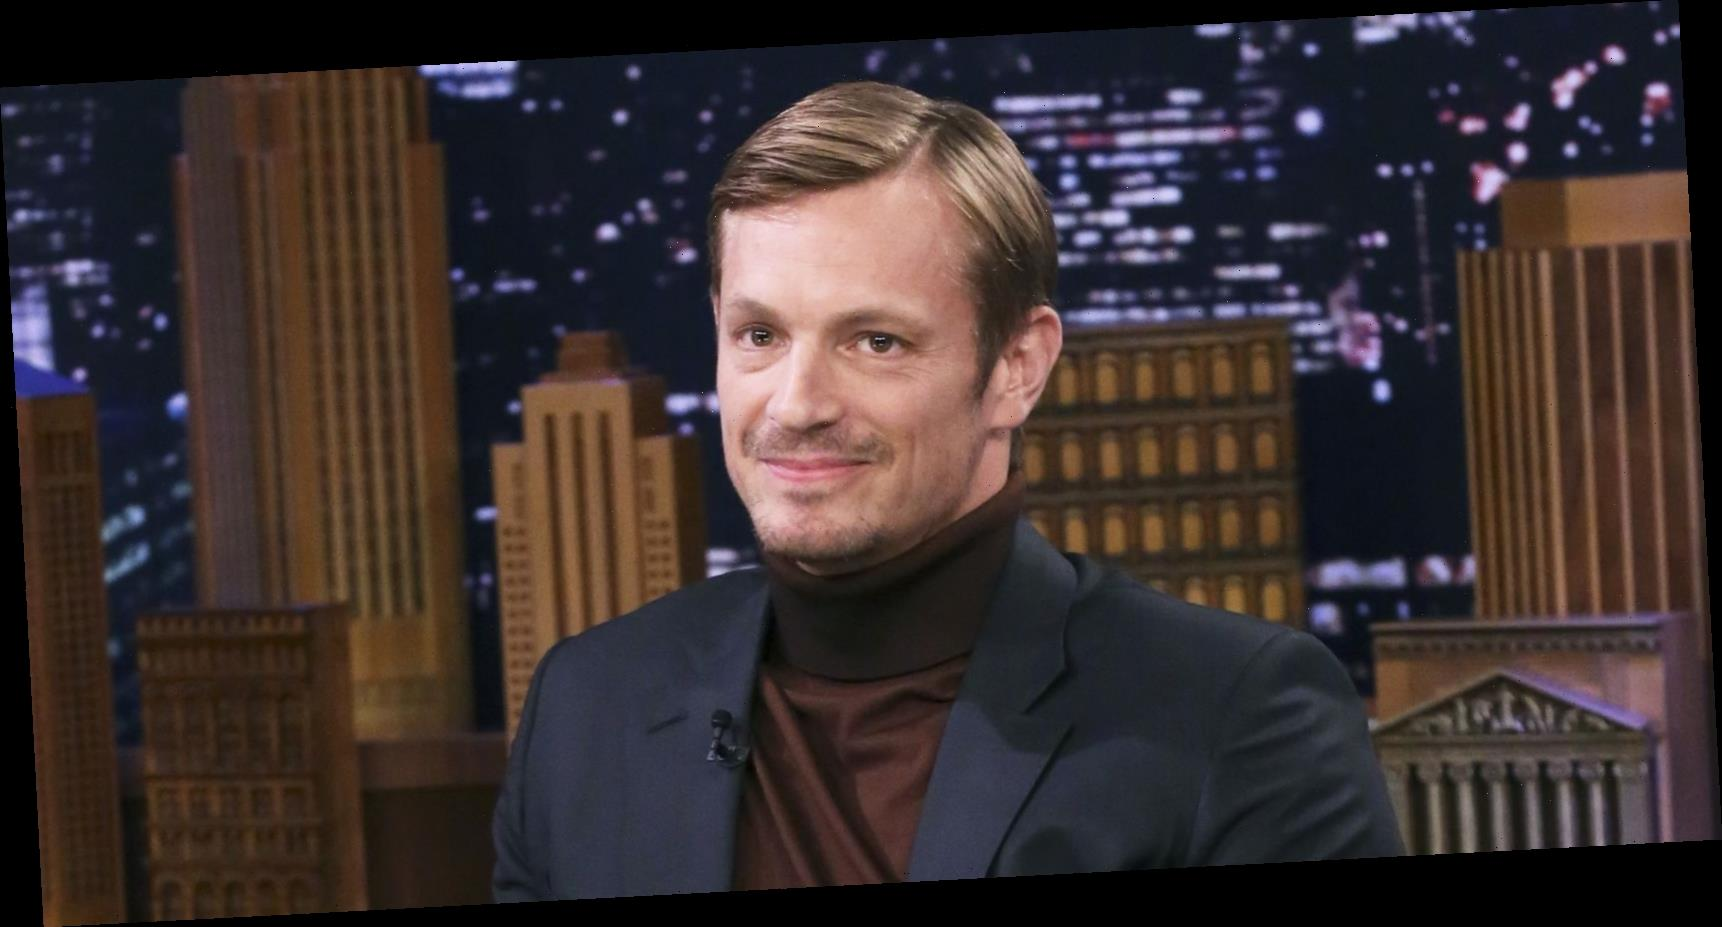 'Suicide Squad' Star Joel Kinnaman Accidentally Posted a Naked Video to Instagram